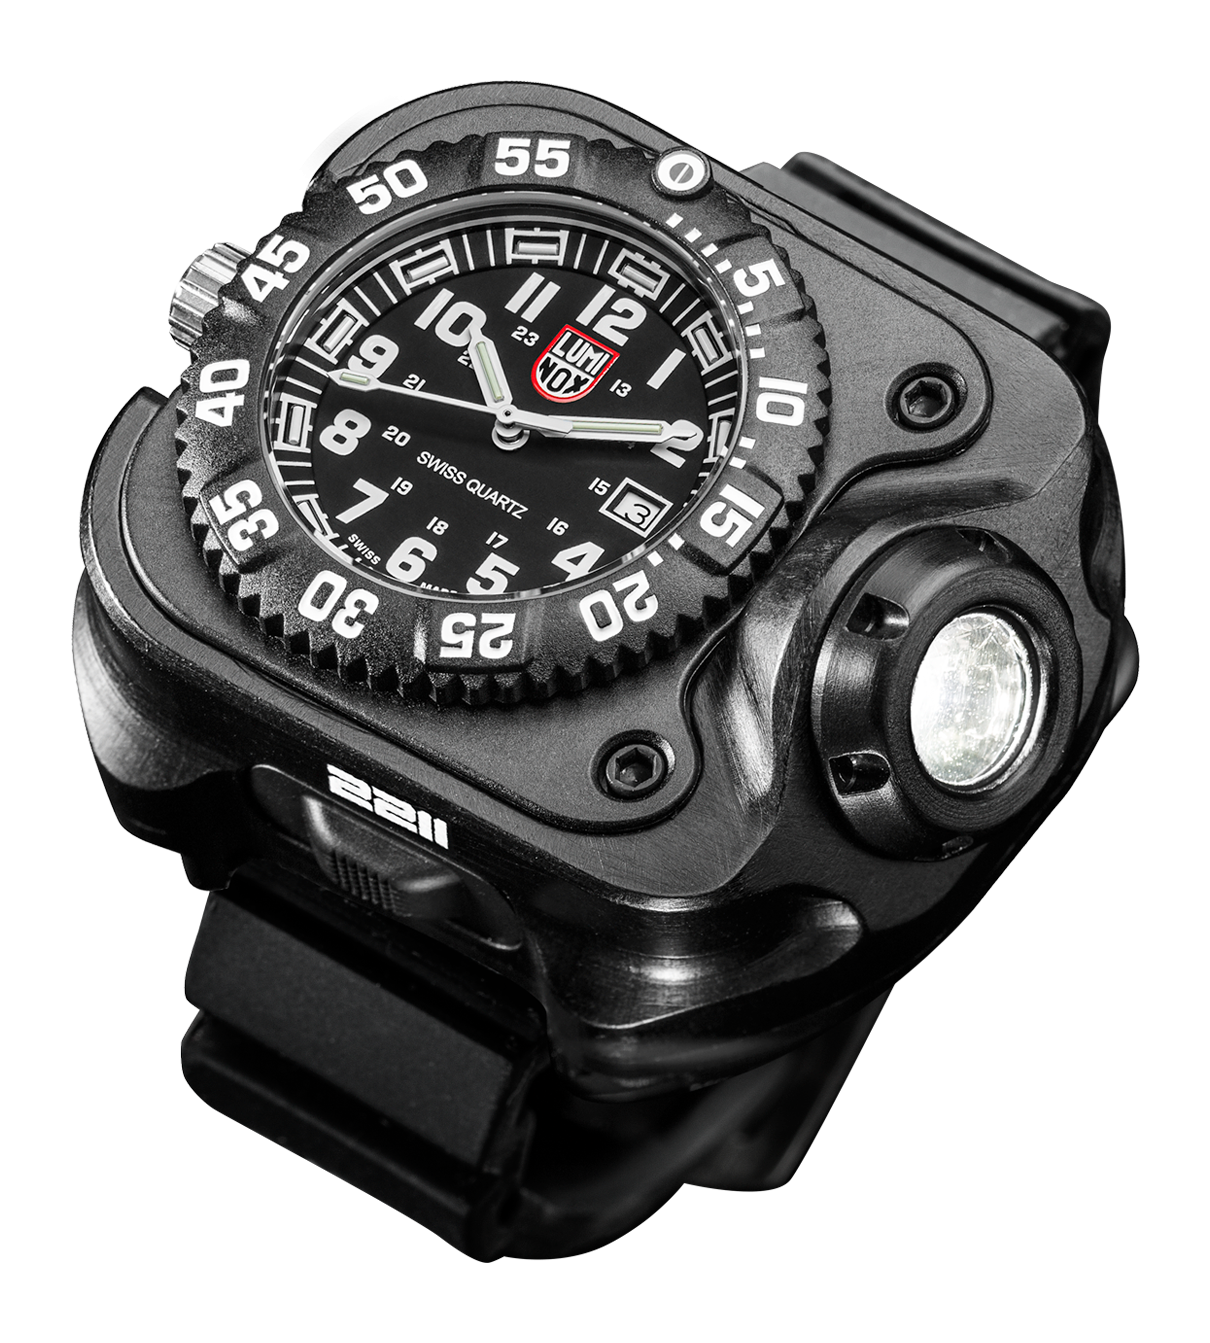 Surefire 2211 Luminox Wristlight  Rechargeable Variable-Output LED WristLight + Watch 2211-B-BK-LMX (PRE ORDER)